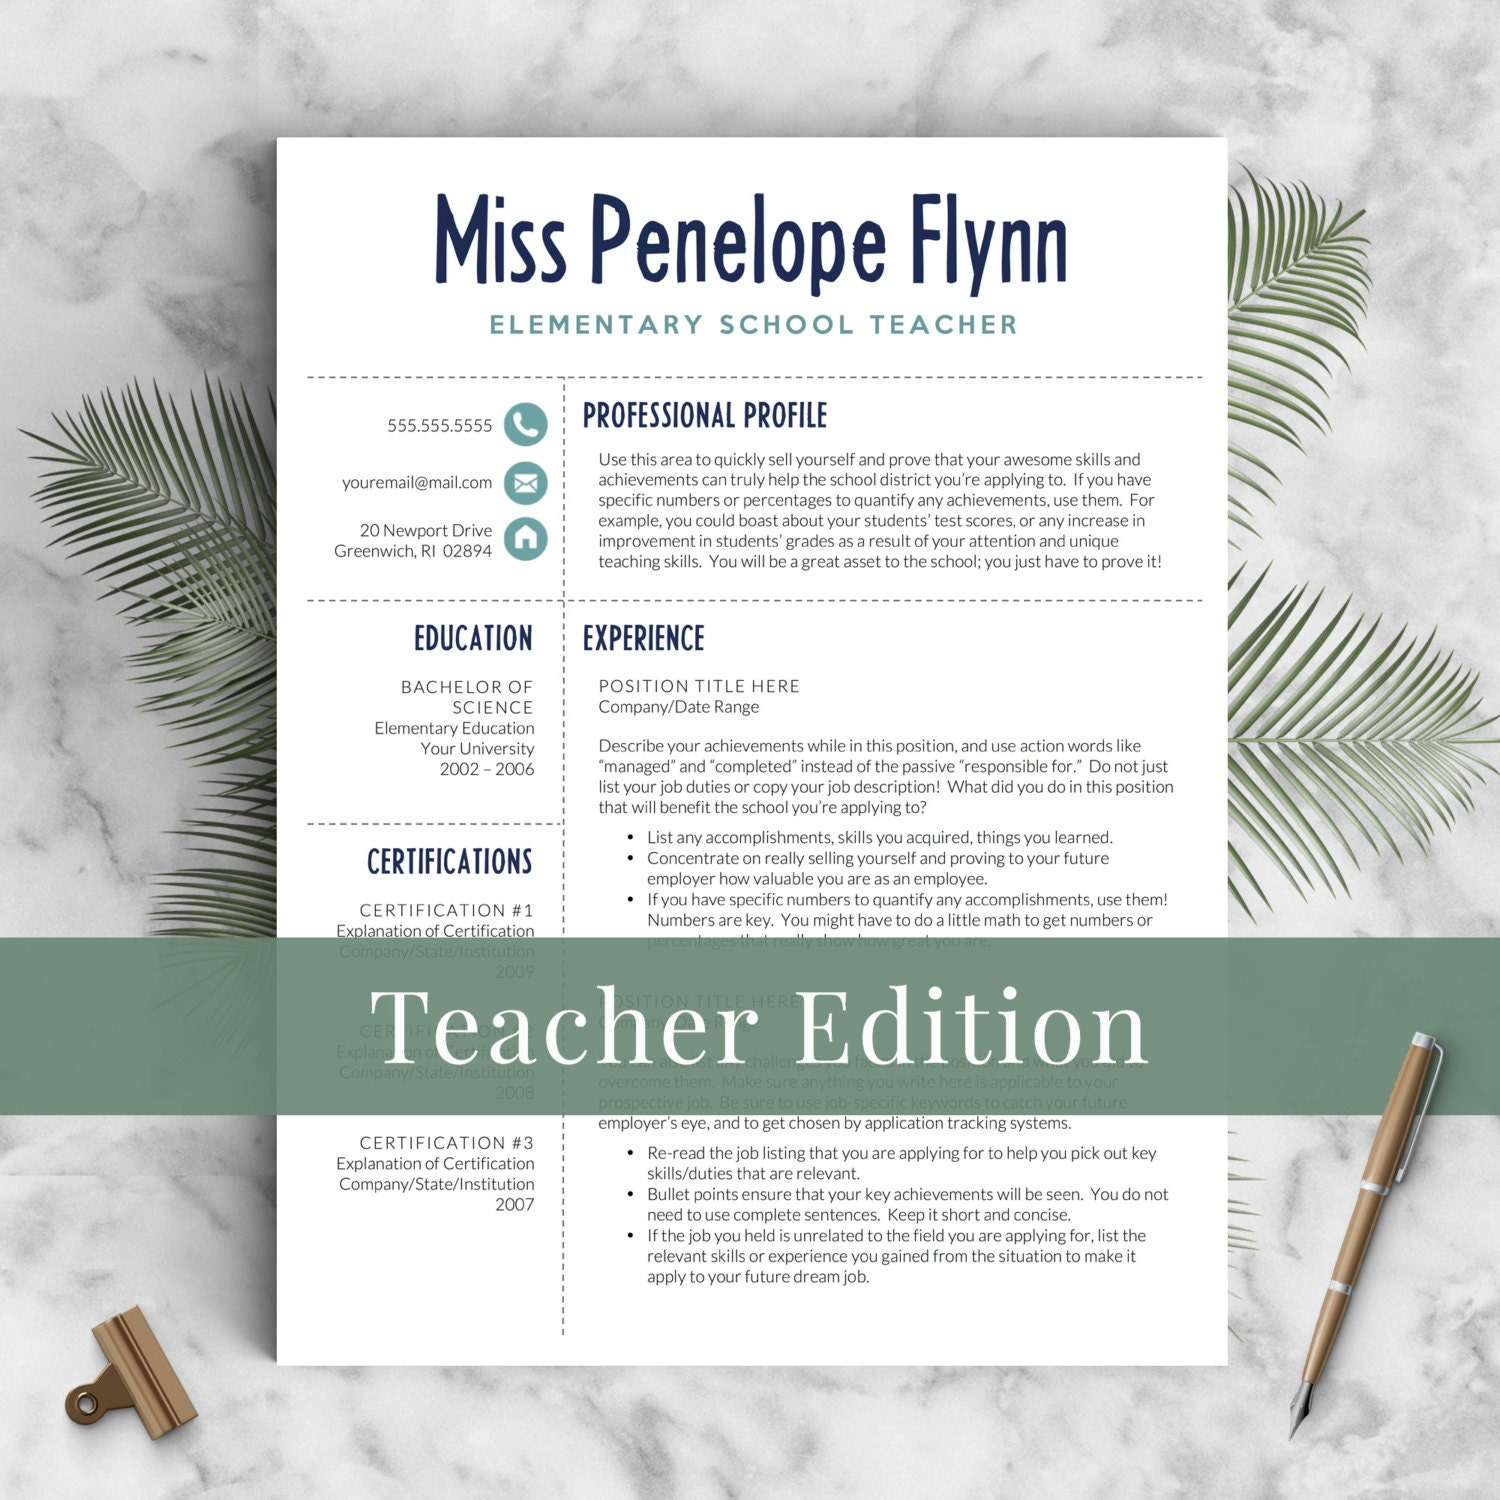 Elementary teacher resume template for word pages 1 3 zoom yelopaper Image collections